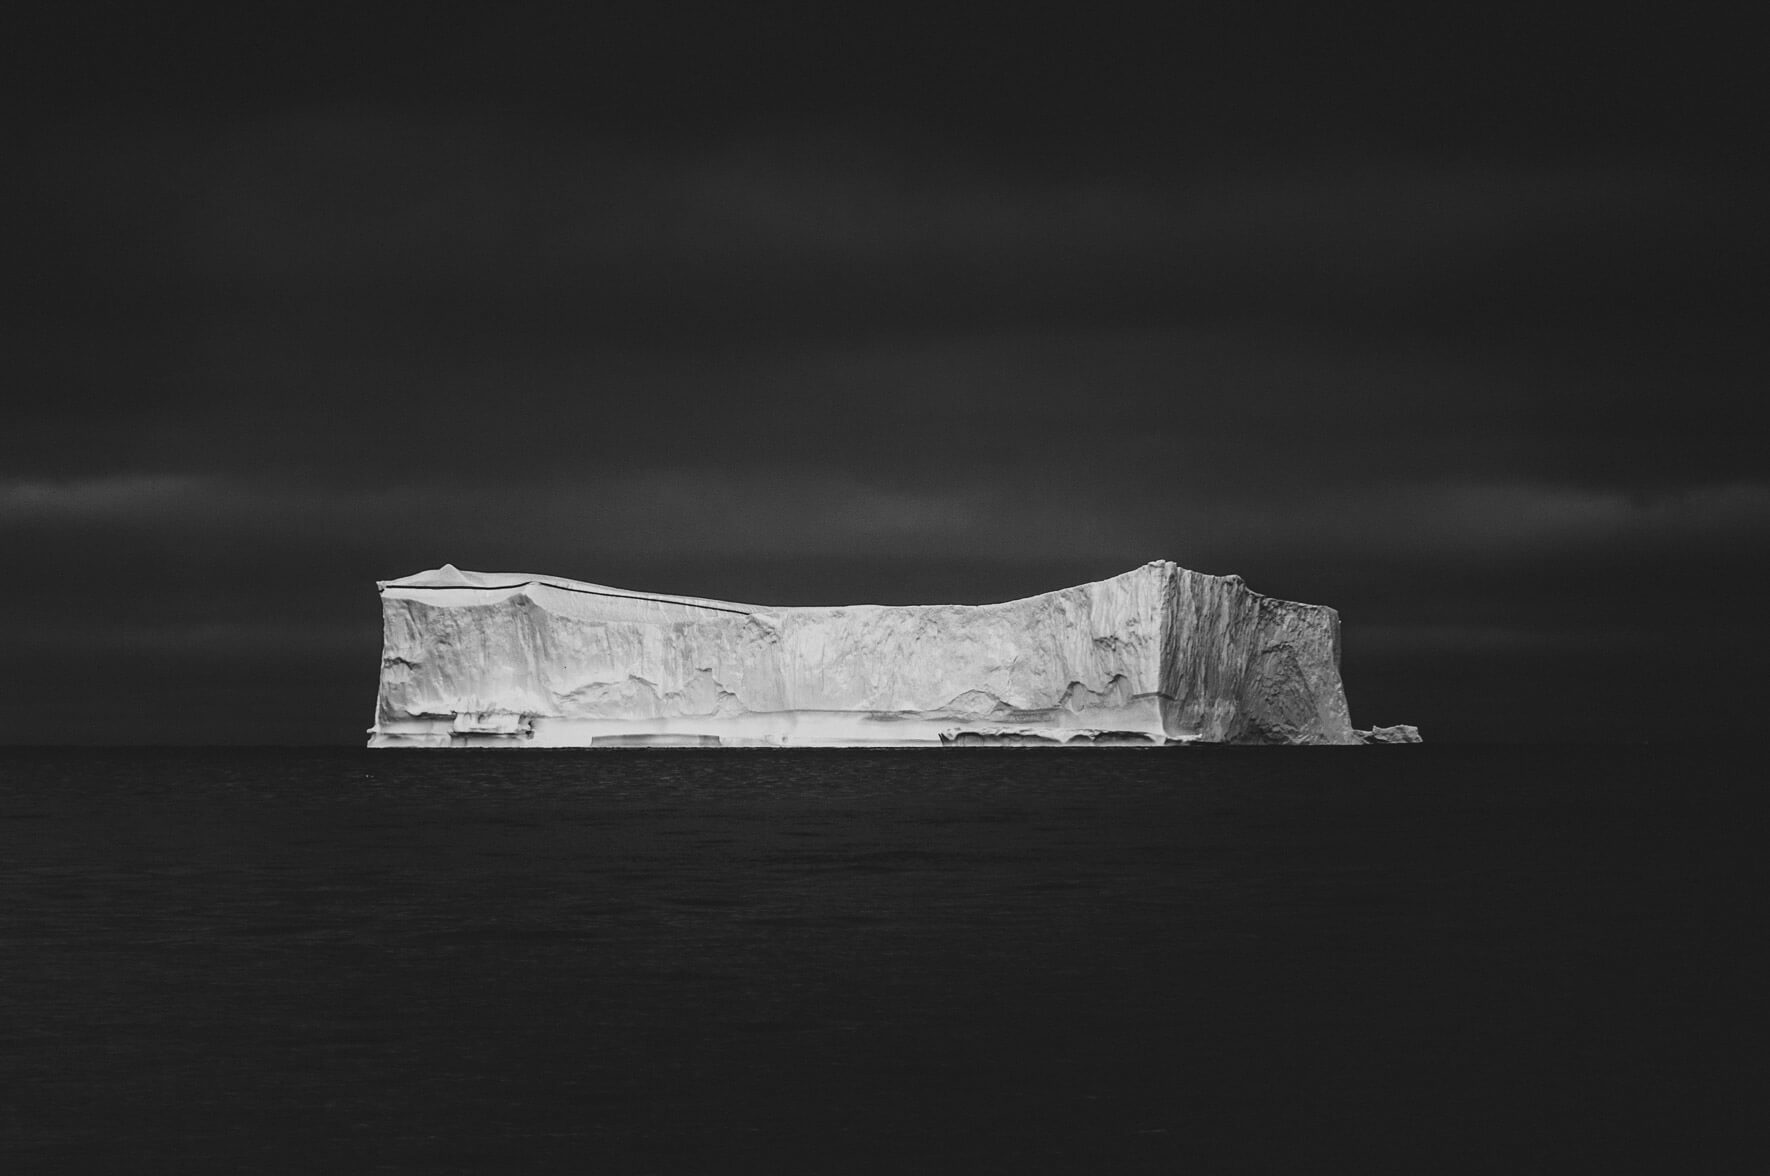 Black and white landscape photography by Northlandscapes - Jan Erik Waider